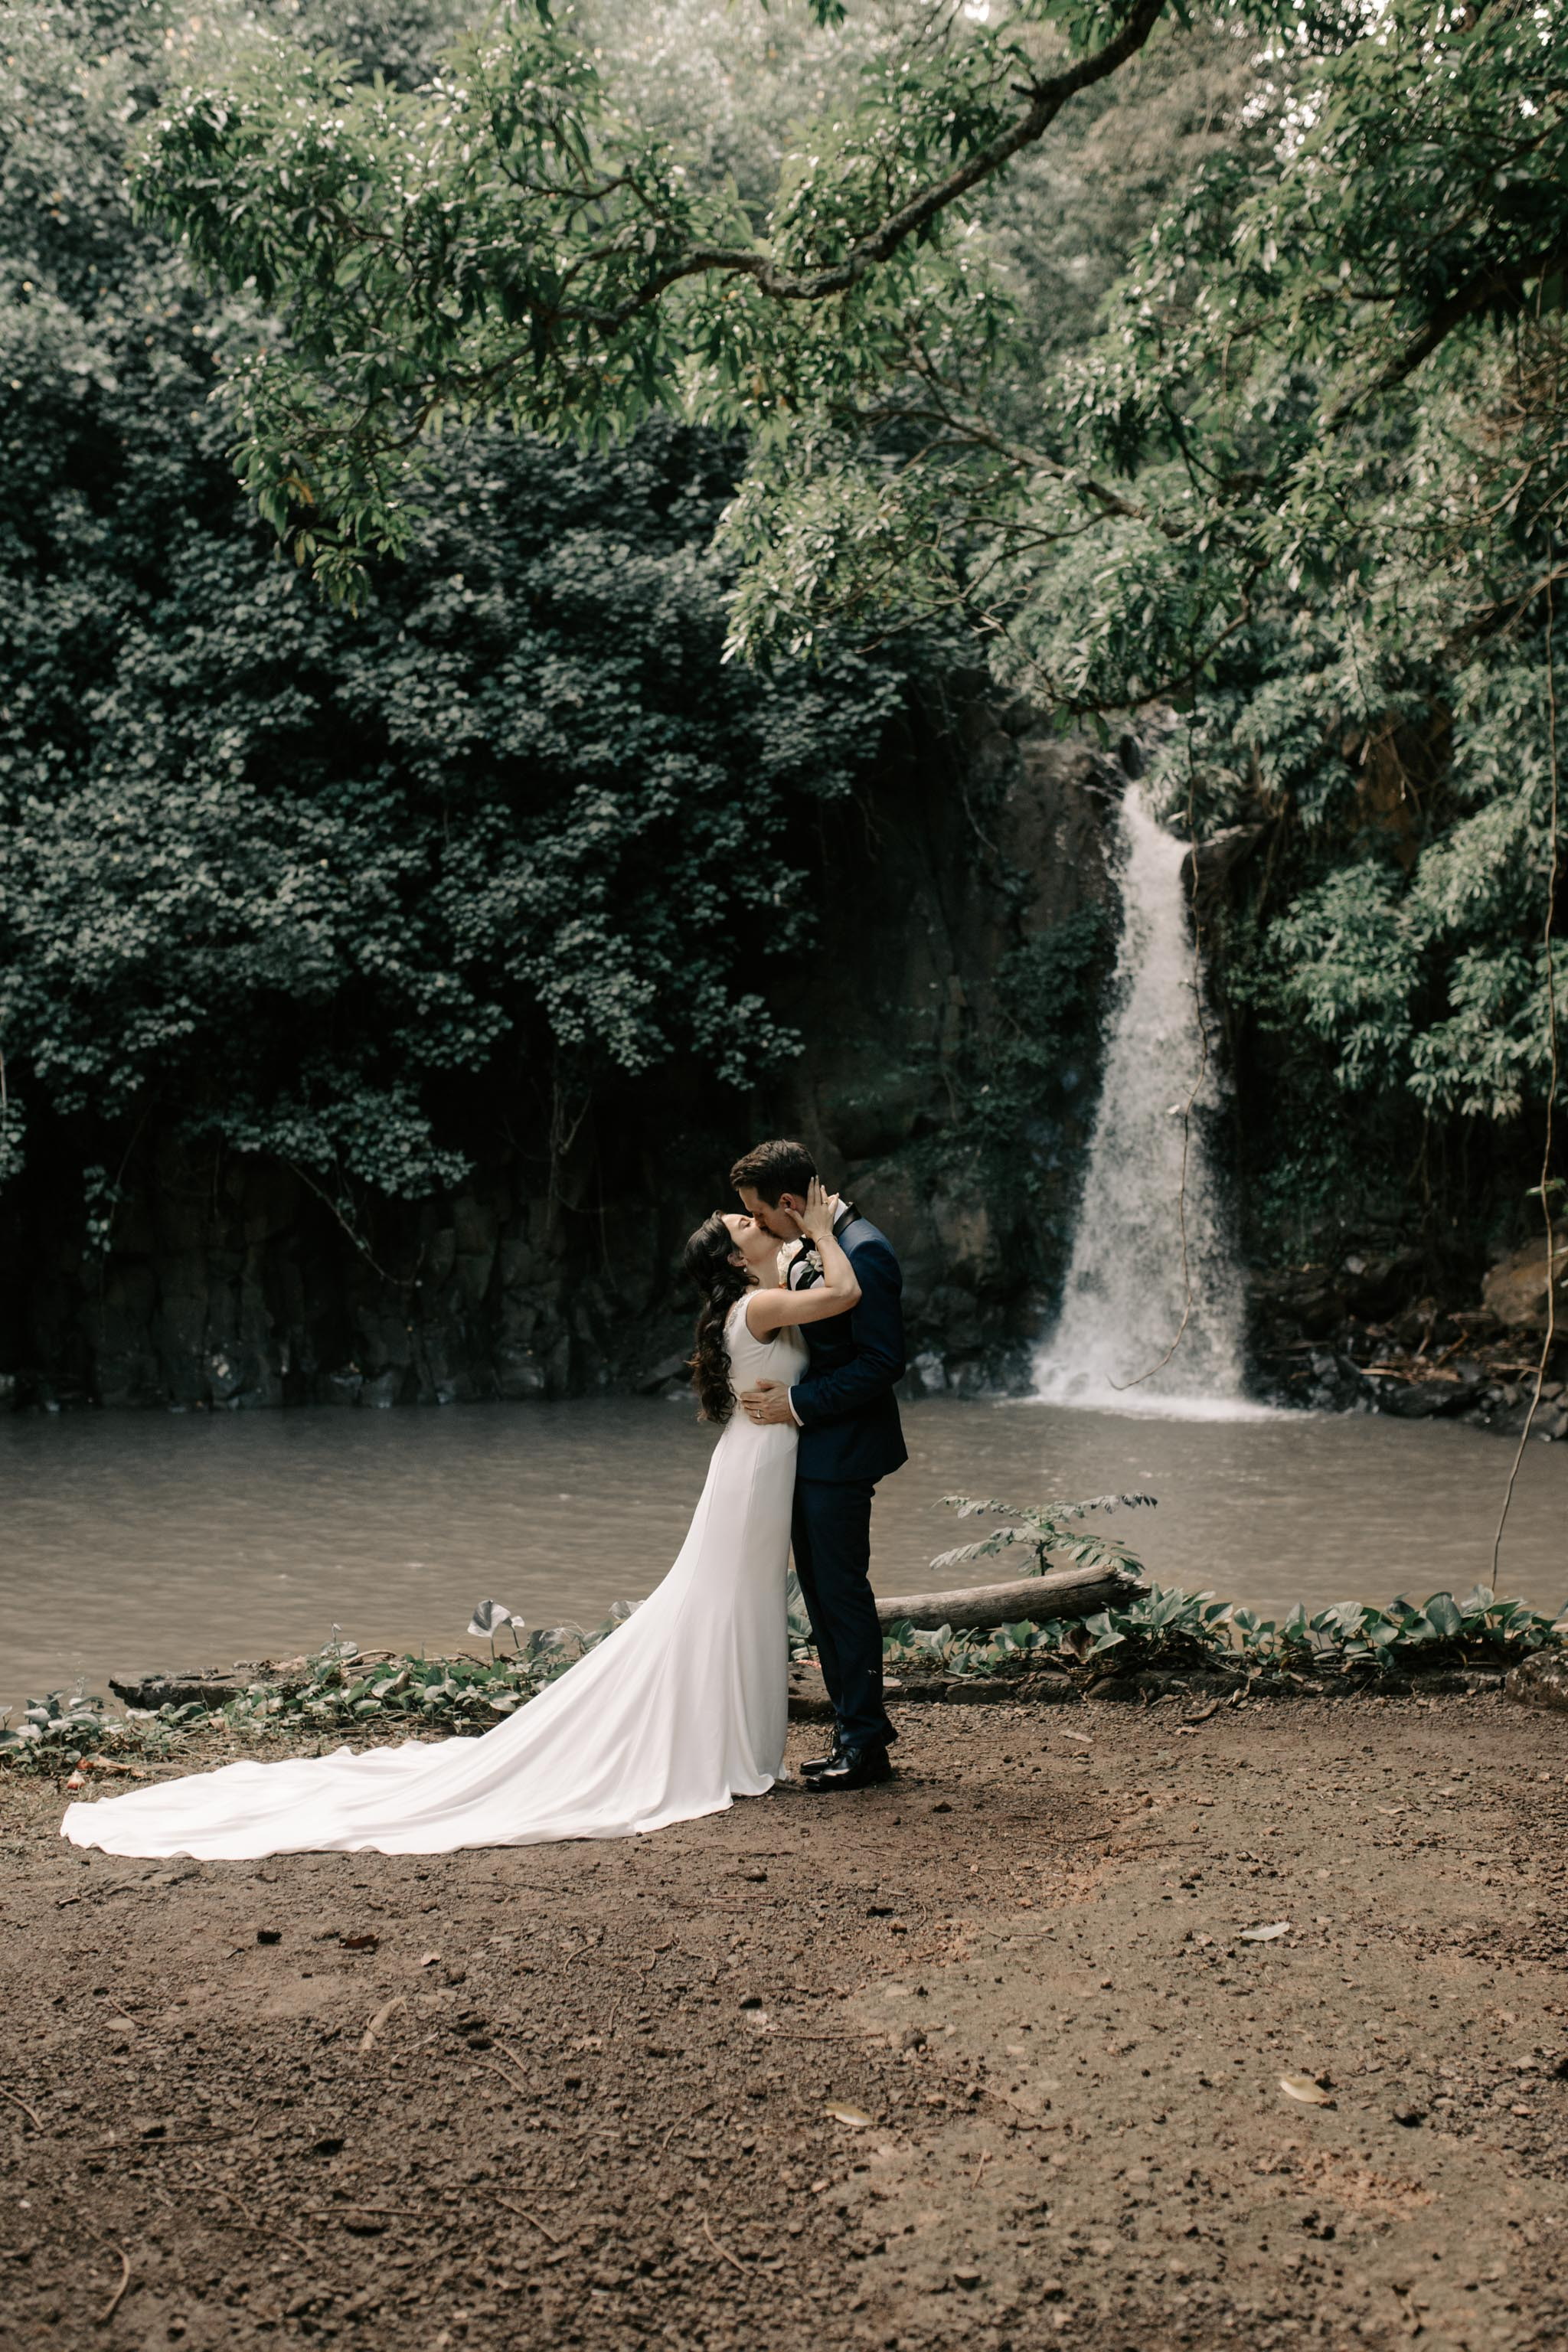 Beautiful Kauai Elopement: McBryde Garden Waihulili Waterfall Wedding By Kauai Wedding Photographer Desiree Leilani